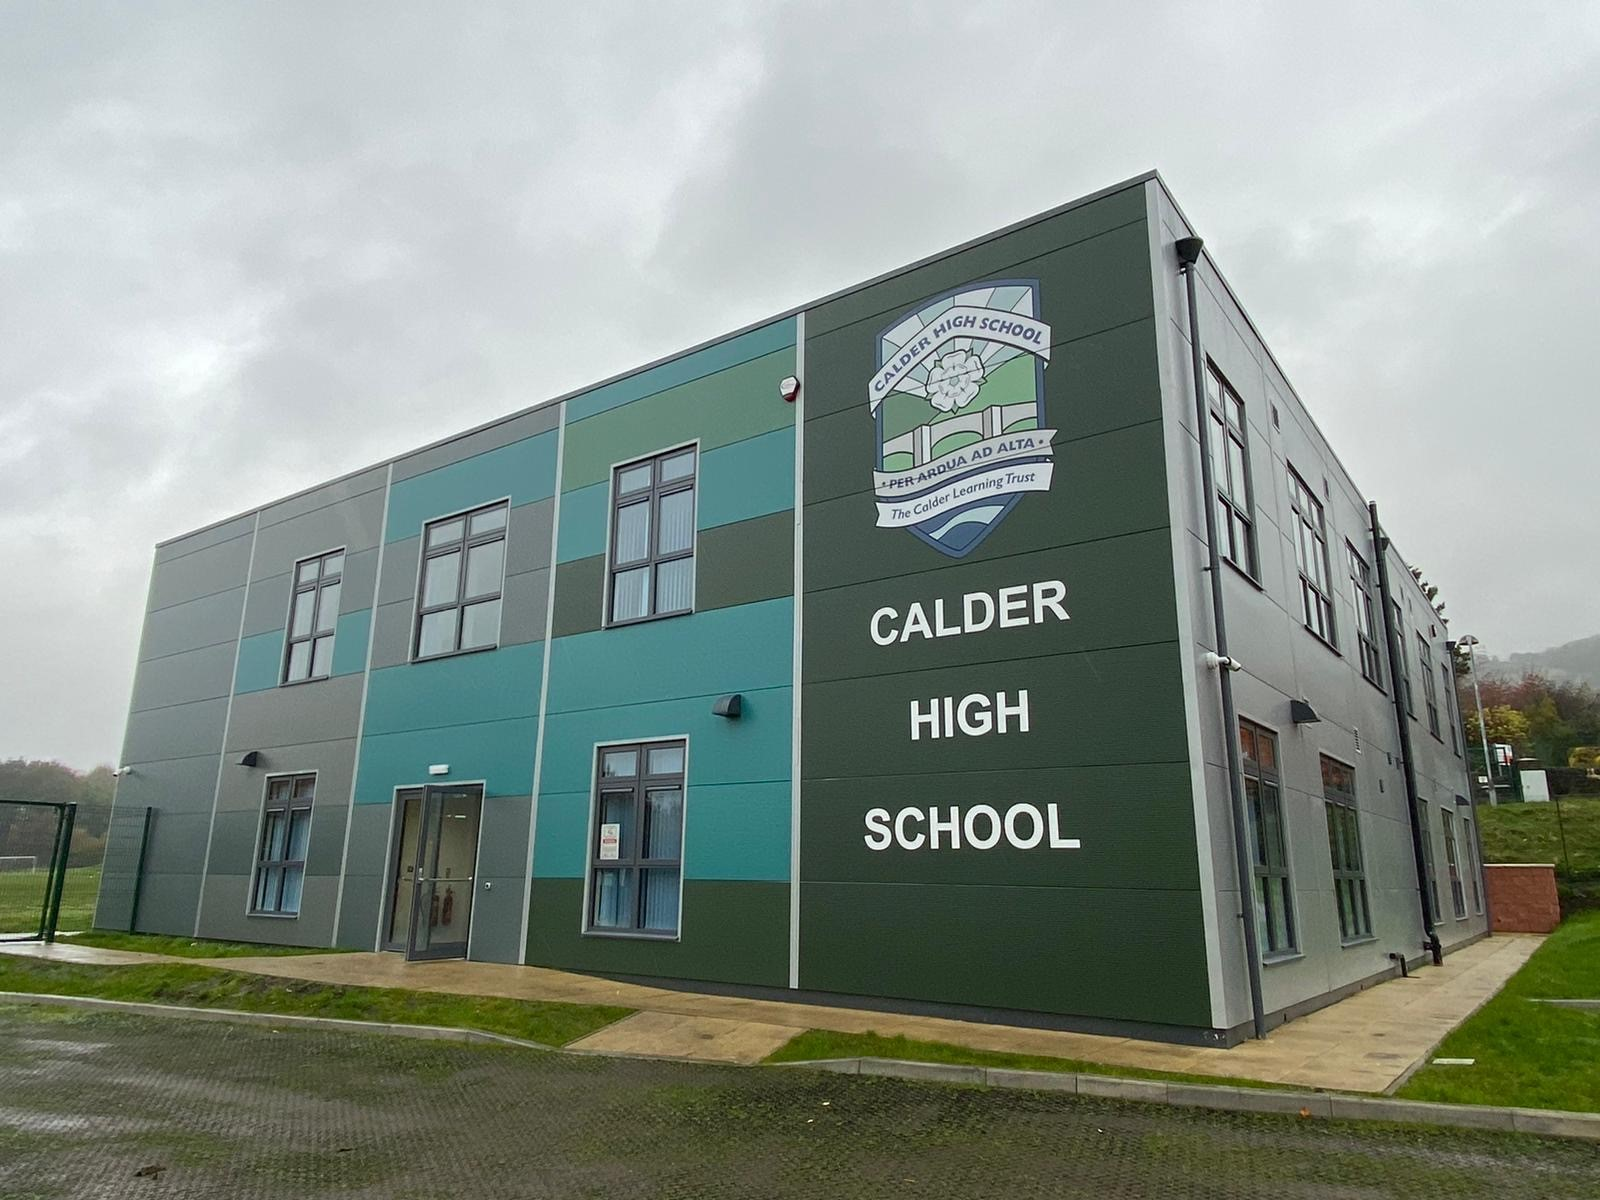 Integra Buildings delivered a high-quality, two-storey teaching block for Calder High School, near Halifax, in partnership with main contractor Interserve. Built off-site in 24 sections, the building includes eight classrooms, a staff room and social space.